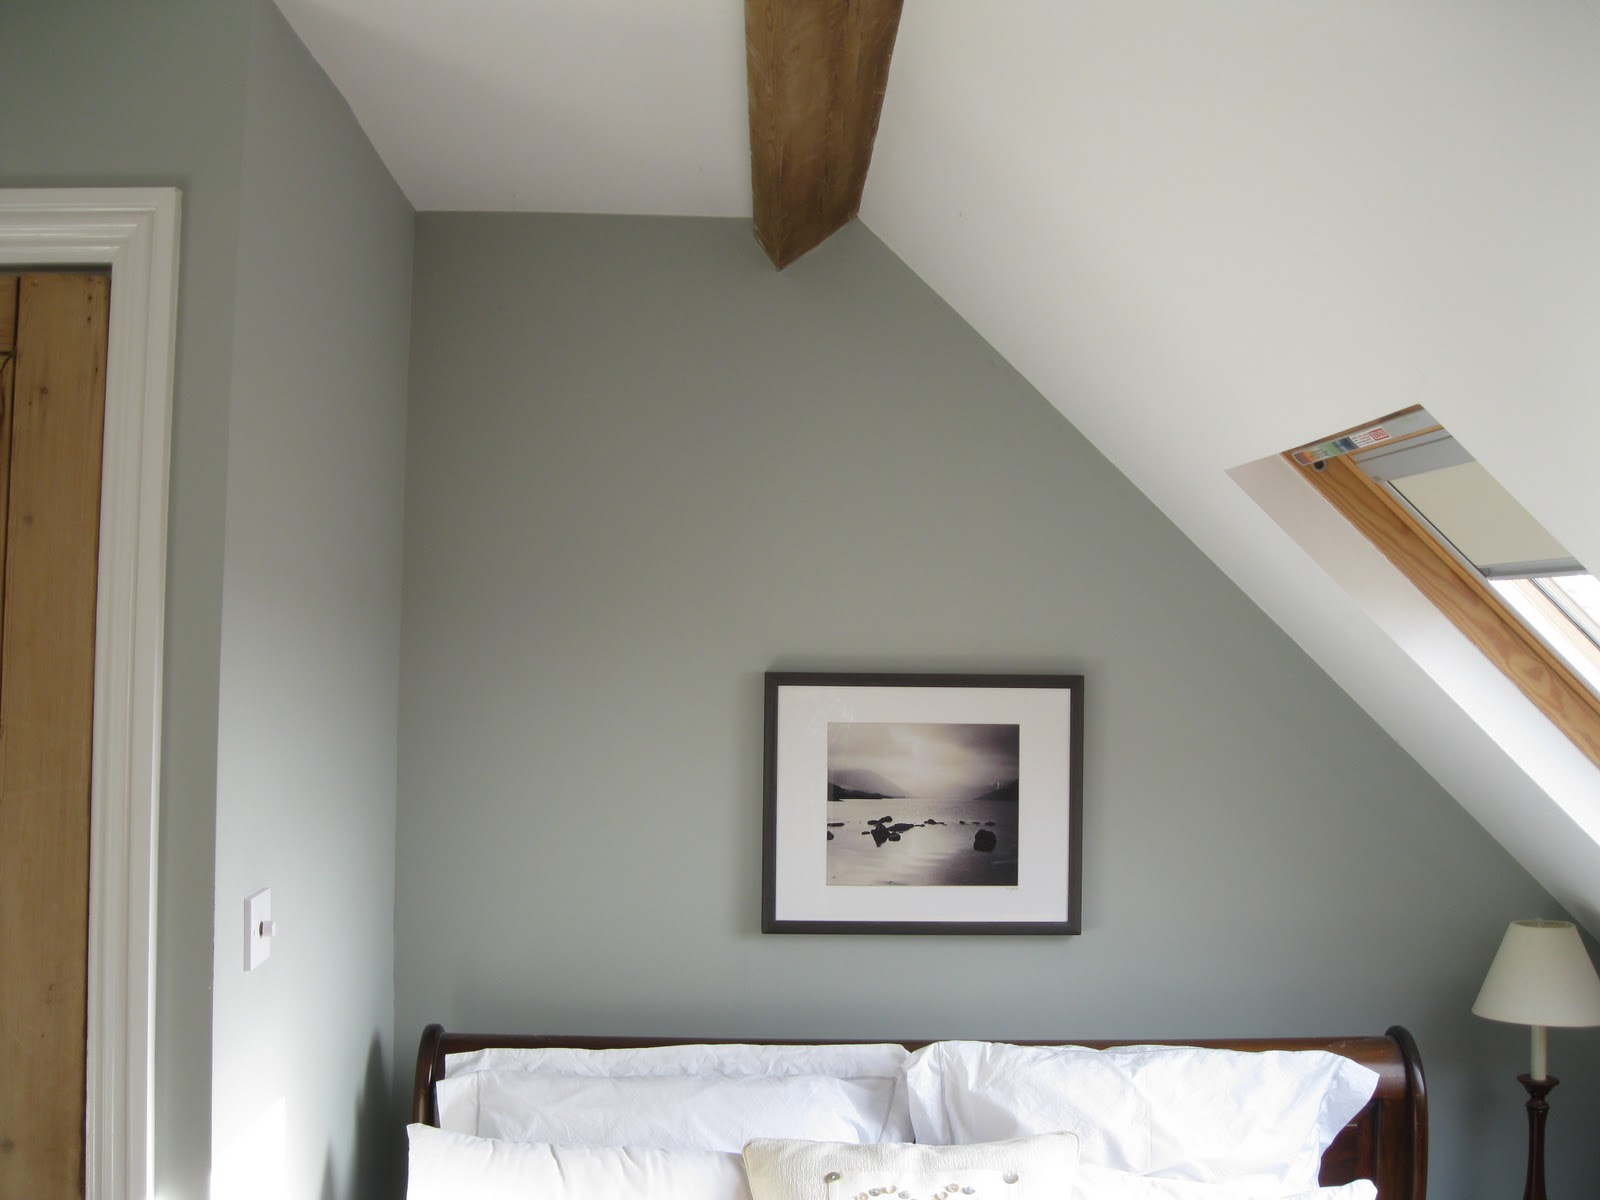 Modern country style case study farrow and ball light - Farrow and ball decoration ...